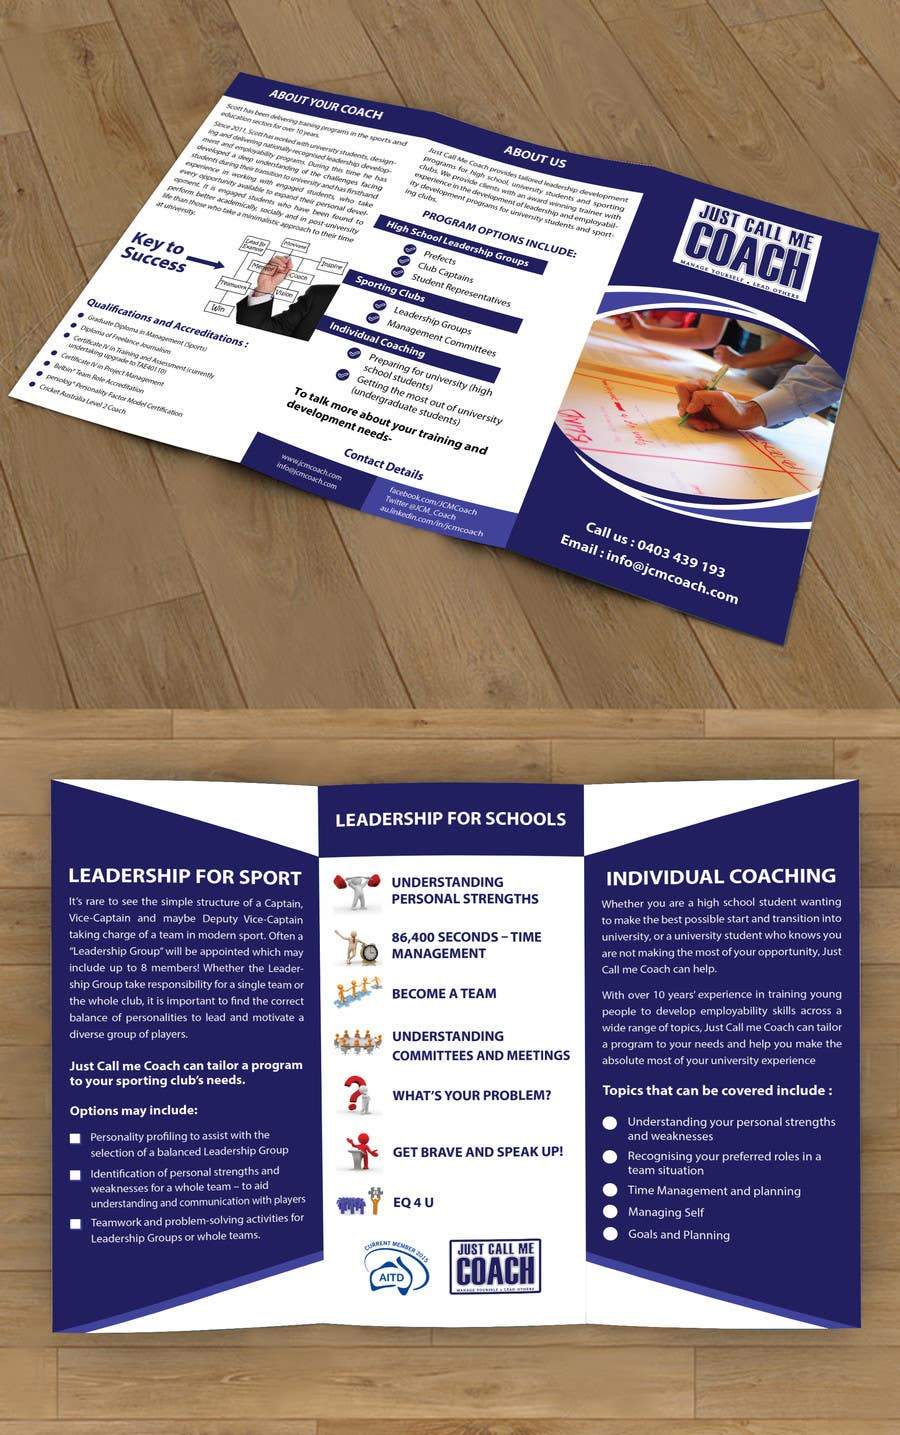 Konkurrenceindlæg #18 for Design a Brochure for Just Call me Coach